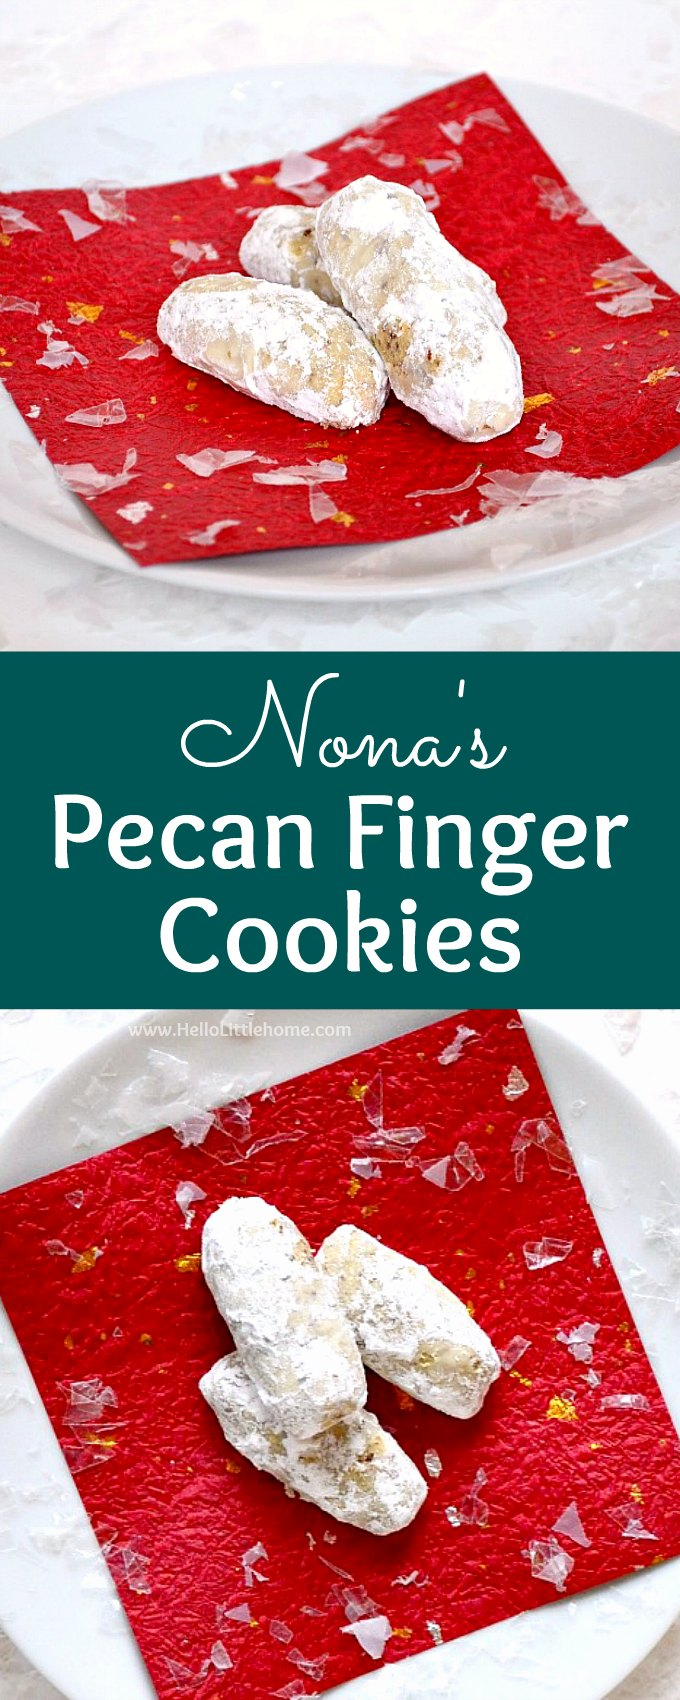 Nona's Pecan Finger Cookies ... learn how to make this traditional pecan fingers cookie recipes that's been handed down for generations! These classic Pecan Cookies feature a buttery, pecan filled dough that gets rolled in powdered sugar after it's baked. Sometimes called Pecan Crescent Cookies, Lady Fingers, or even Nutty Fingers, these Christmas cookies are a hit every holiday season. | Hello Little Home